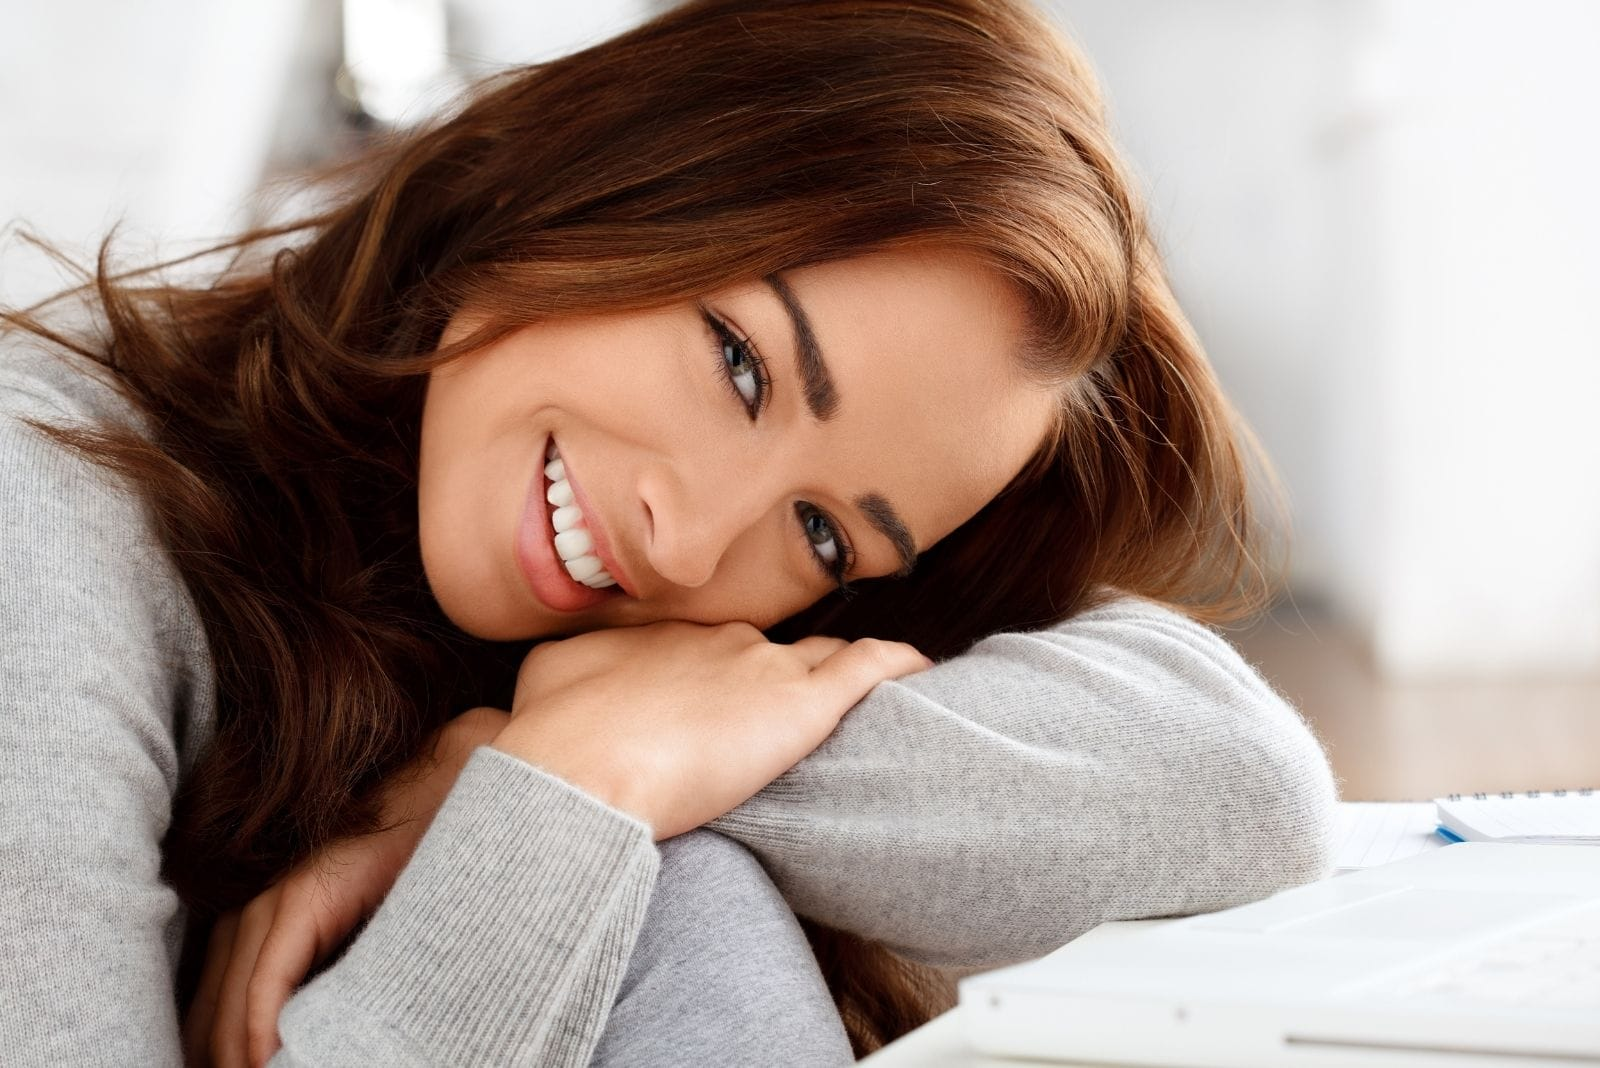 beautiful woman smiling leaning on her arms looking at the camera